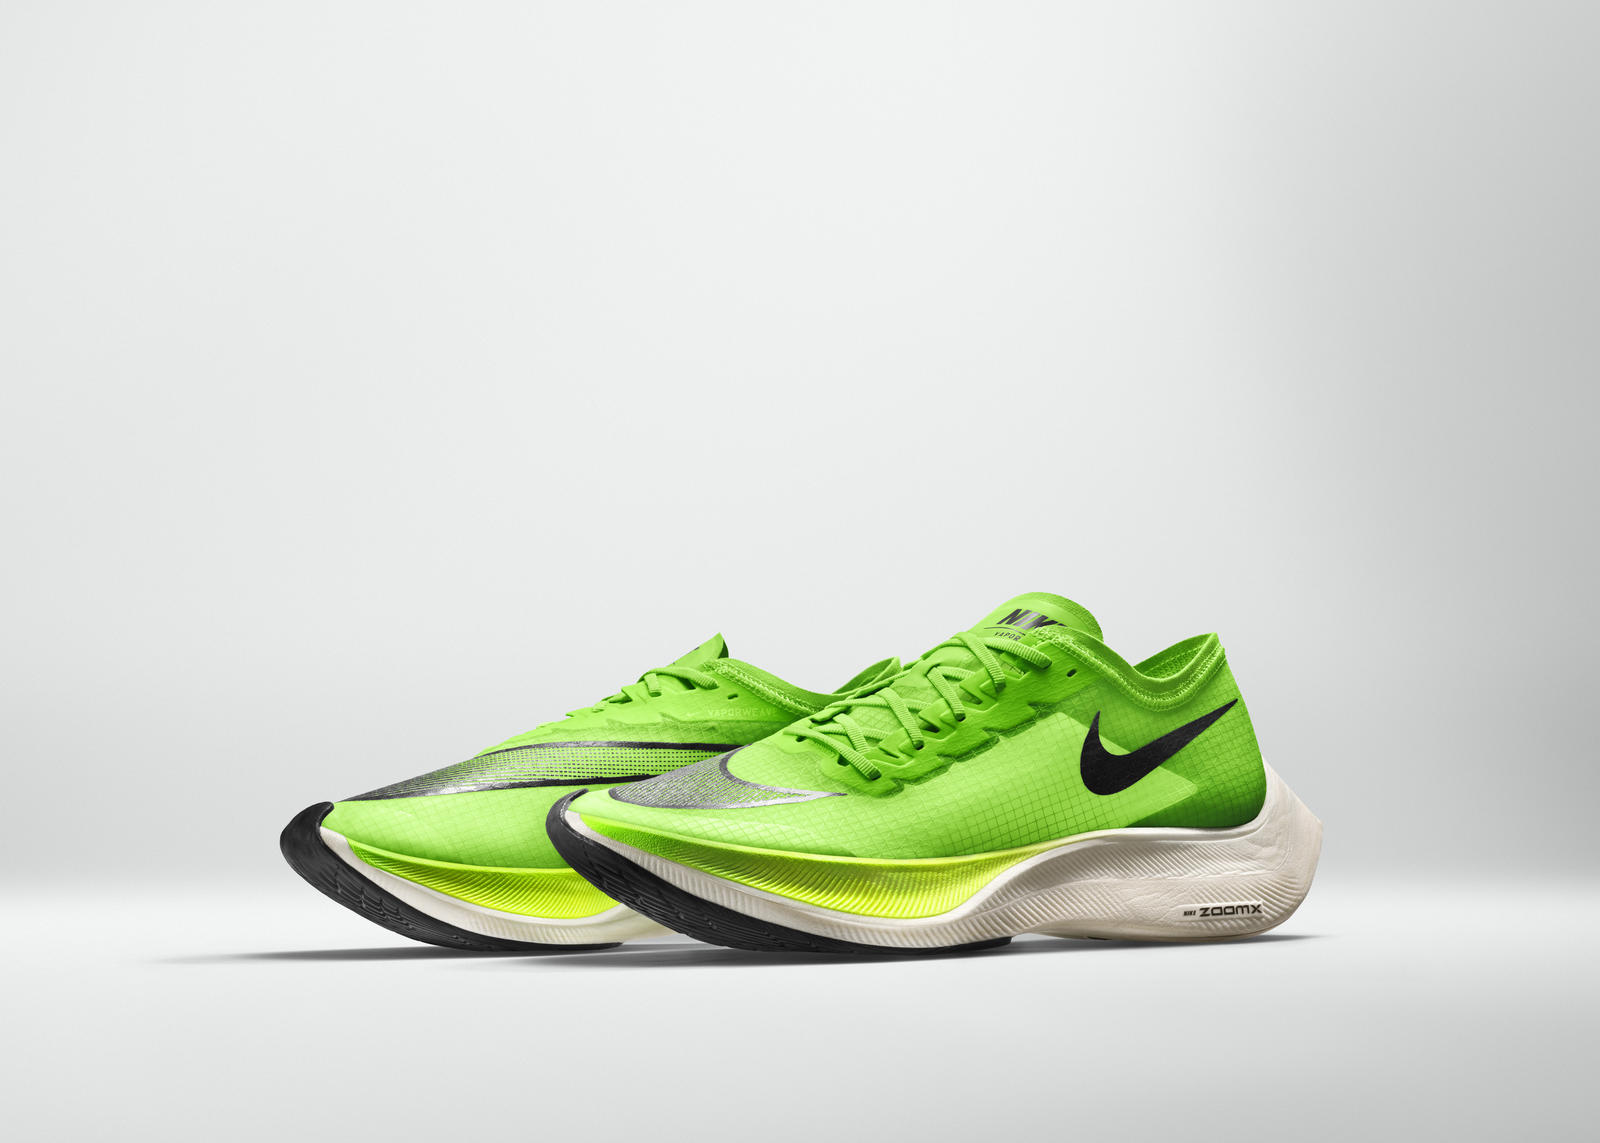 Nike ZoomX Vaporfly Next% Official Images and Release Info  12